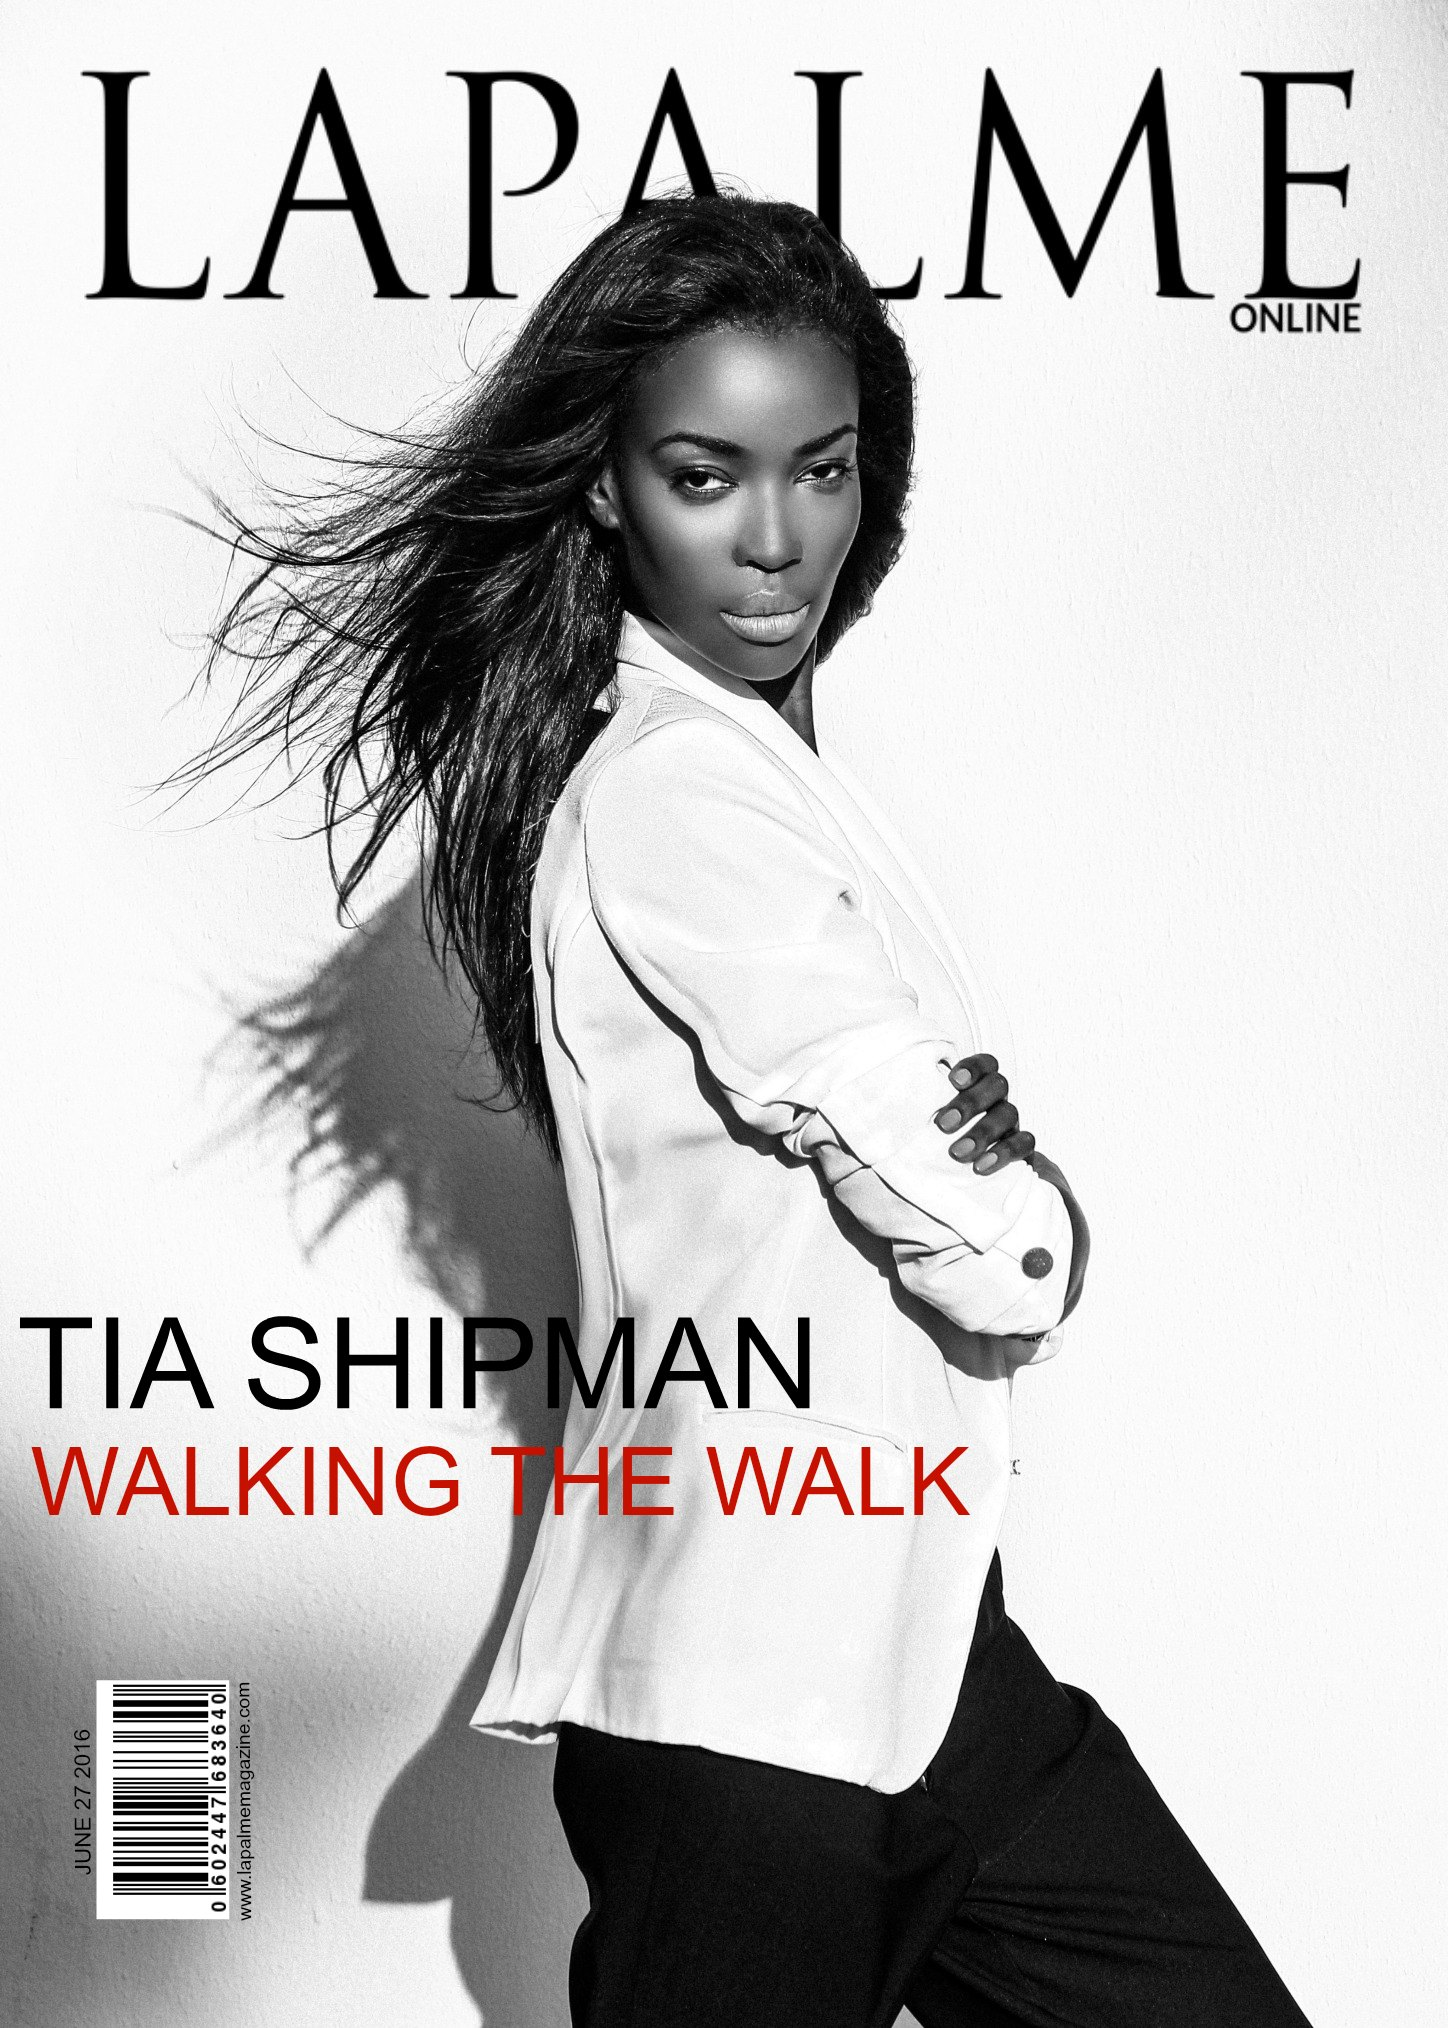 Walking the Walk: Tia Shipman Gives Us a Peek into Her Life and the Industry